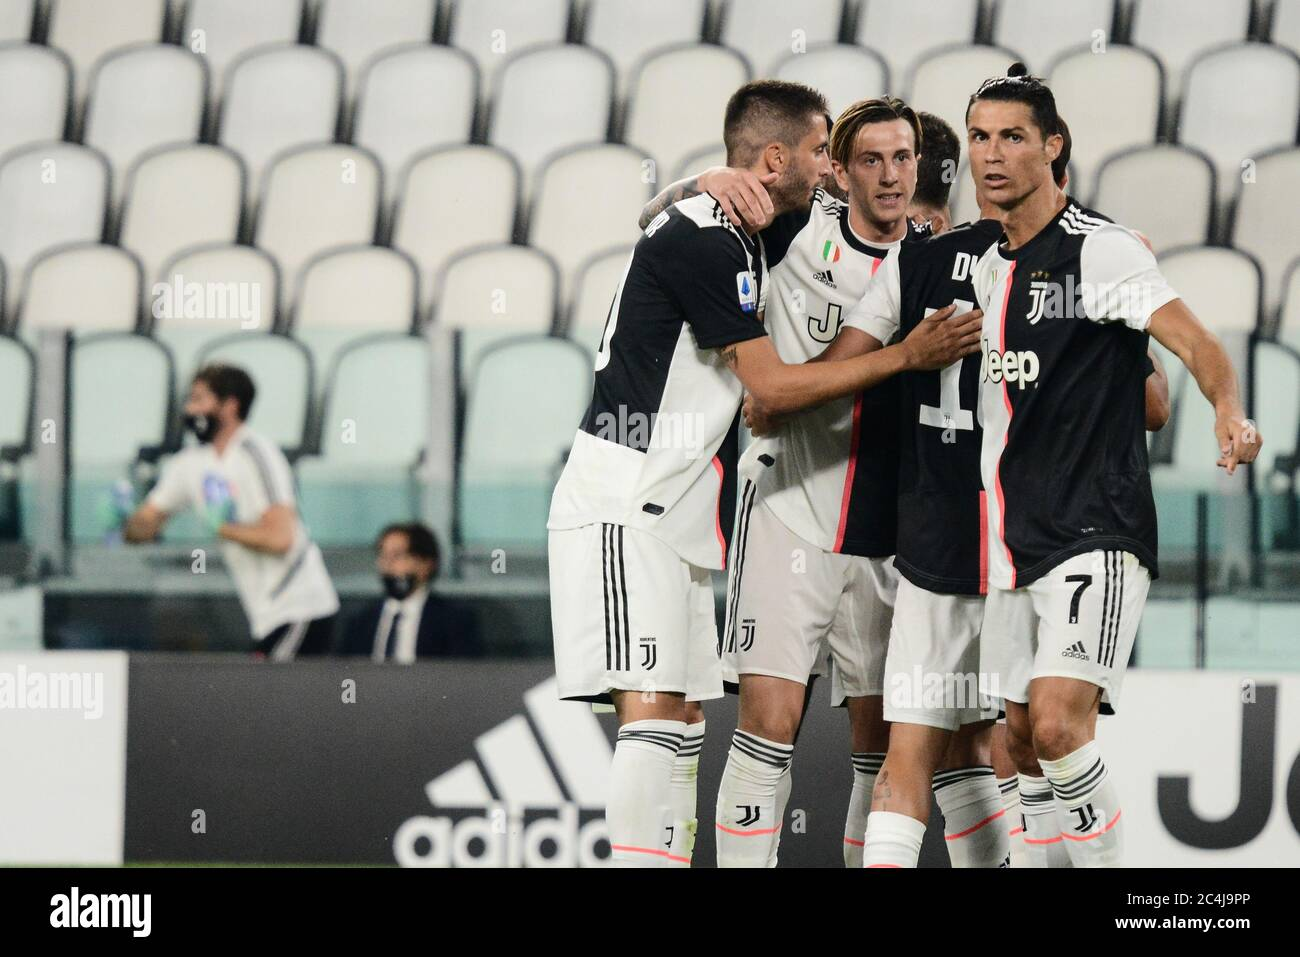 Turin Italy 26th June 2020 Cristiano Ronaldo Of Juventus Celebrates During The The Serie A Football Match Juventus Fc Vs Lecce Juventus Won 4 0 At Allianz Stadium In Turin Italy On 26